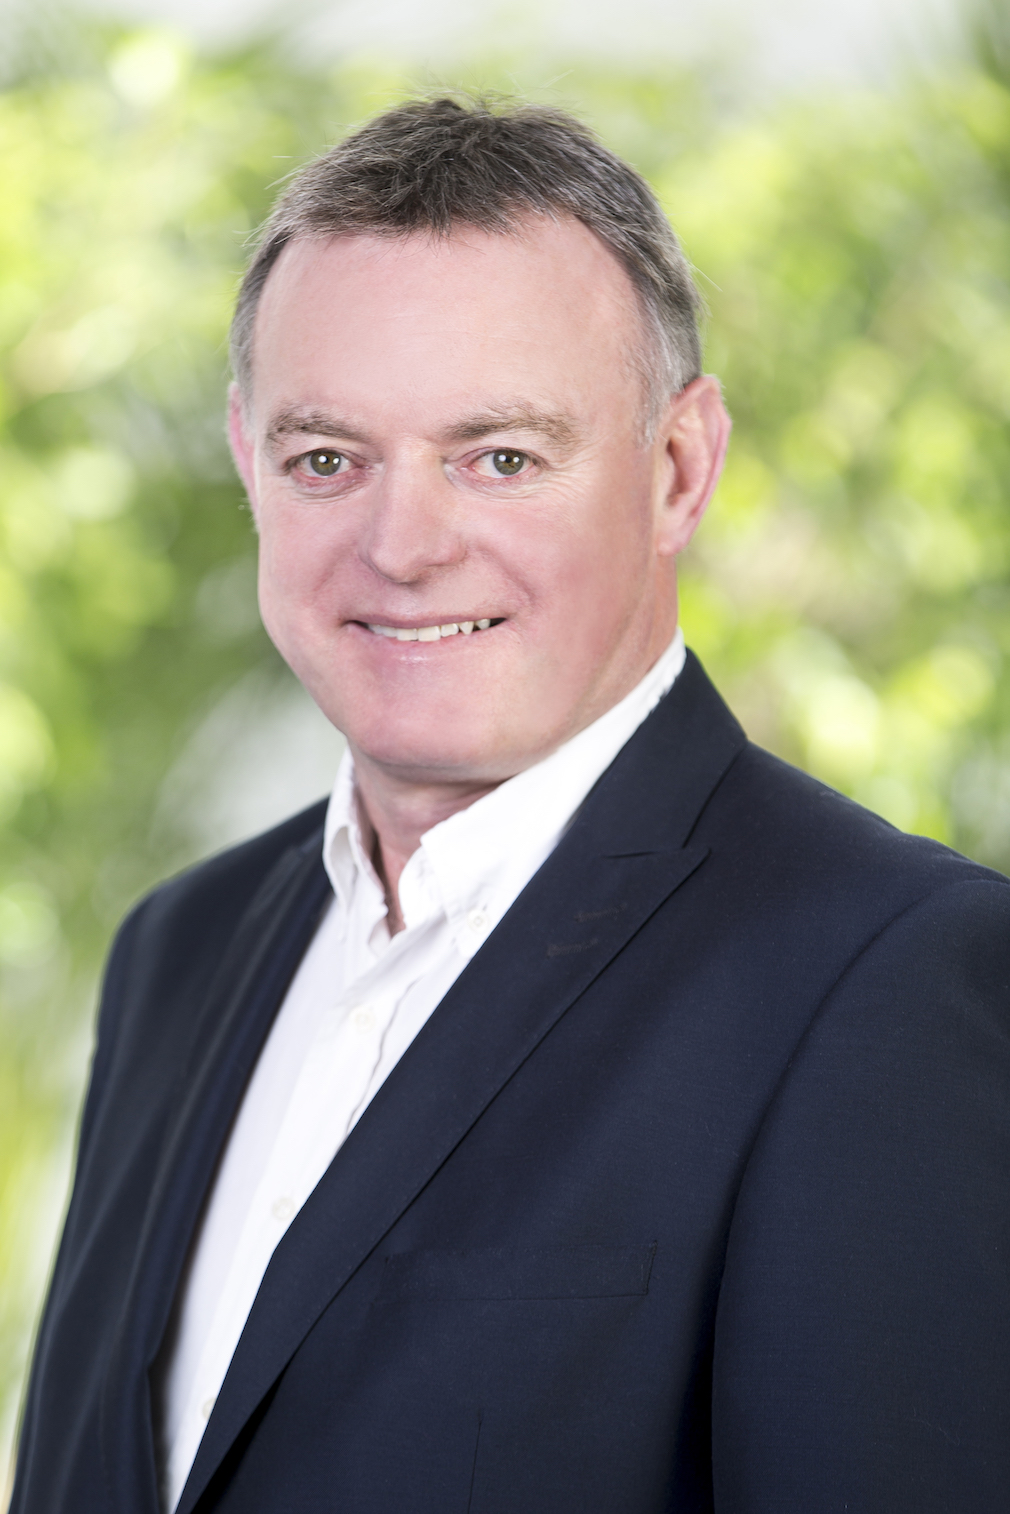 Mark Duffelen, vice president and general manager of Xerox Middle East and Africa